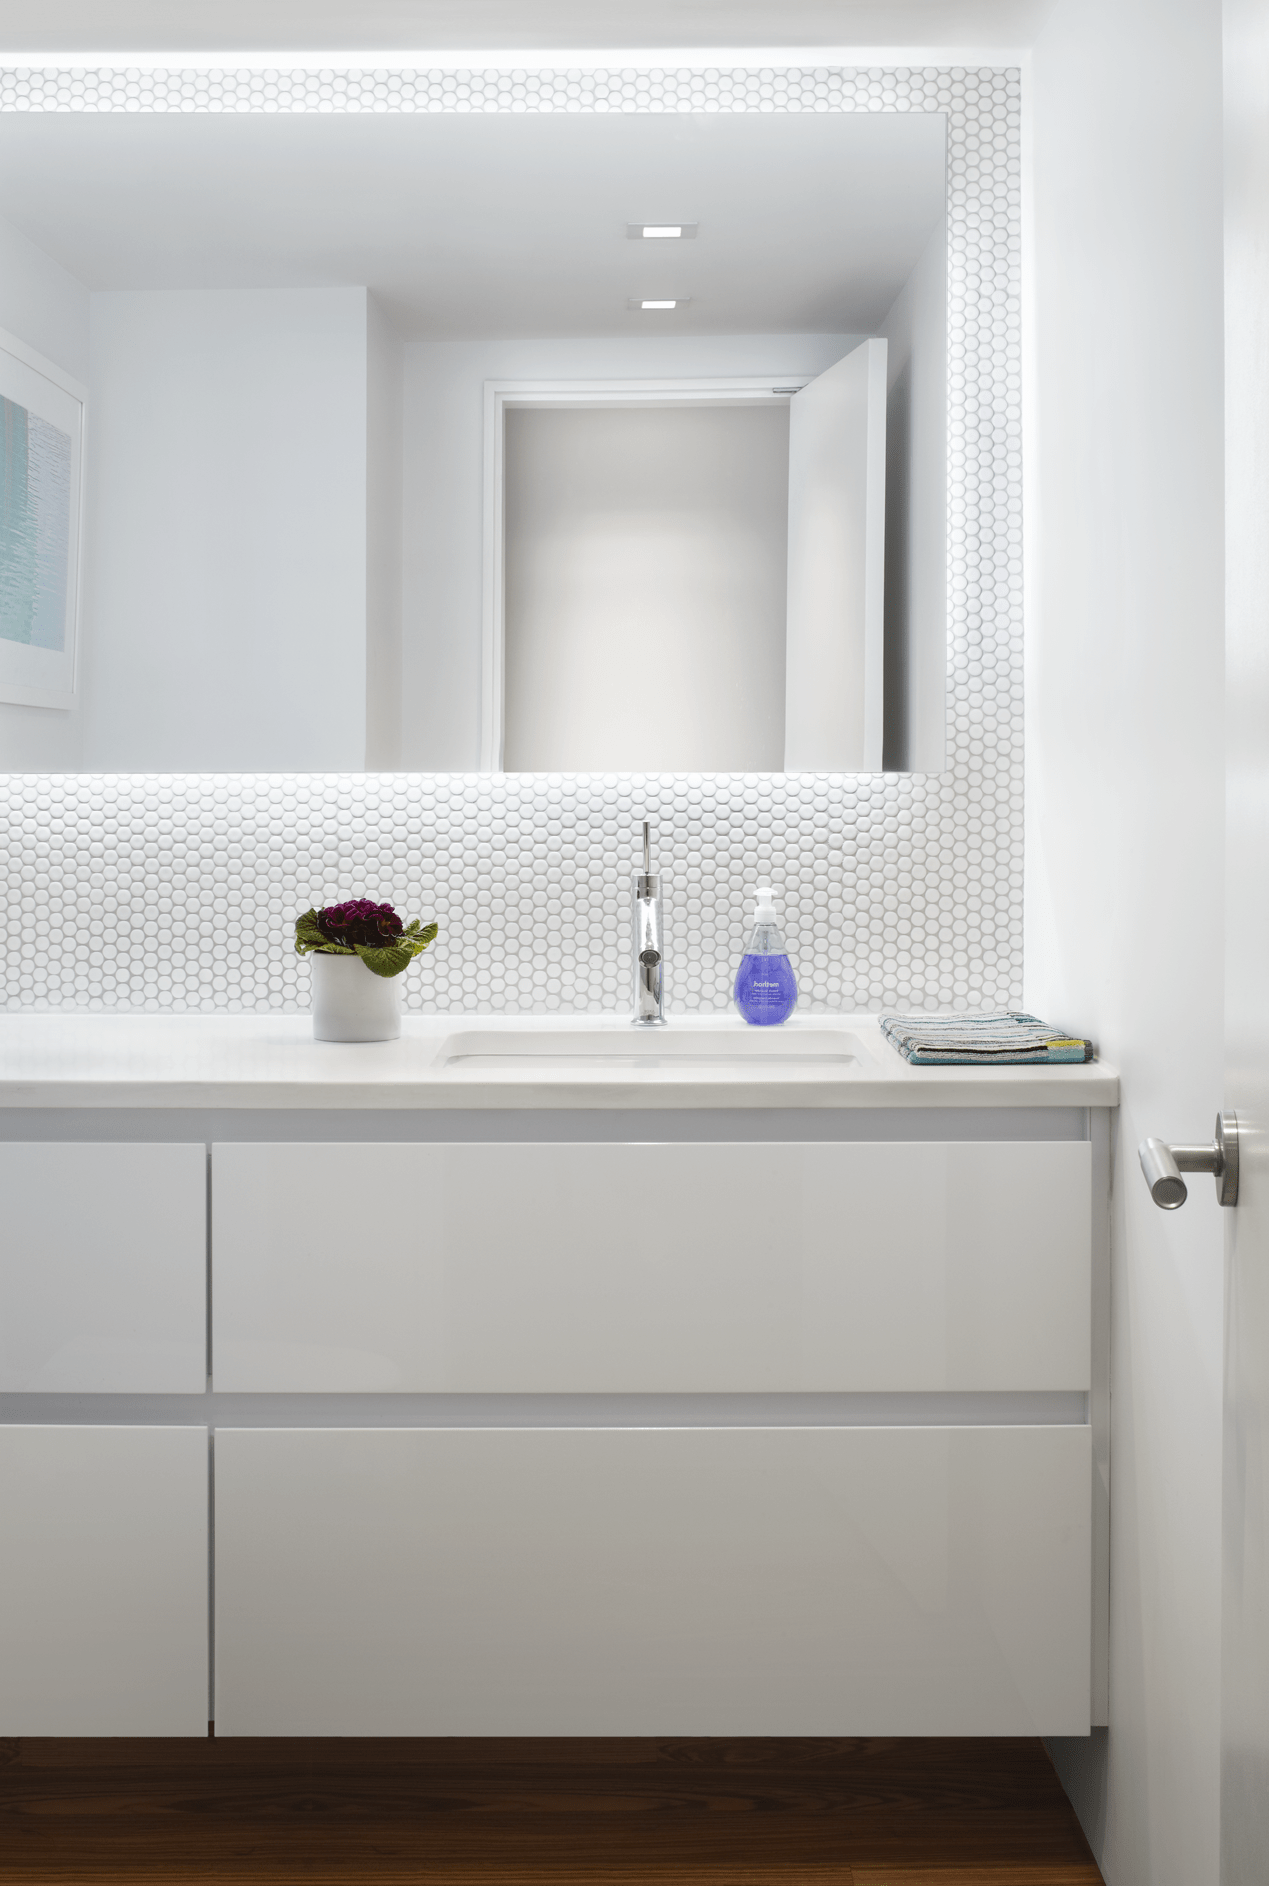 2017 Contemporary Bathroom Mirror With LED Back Light (Image 1 of 20)